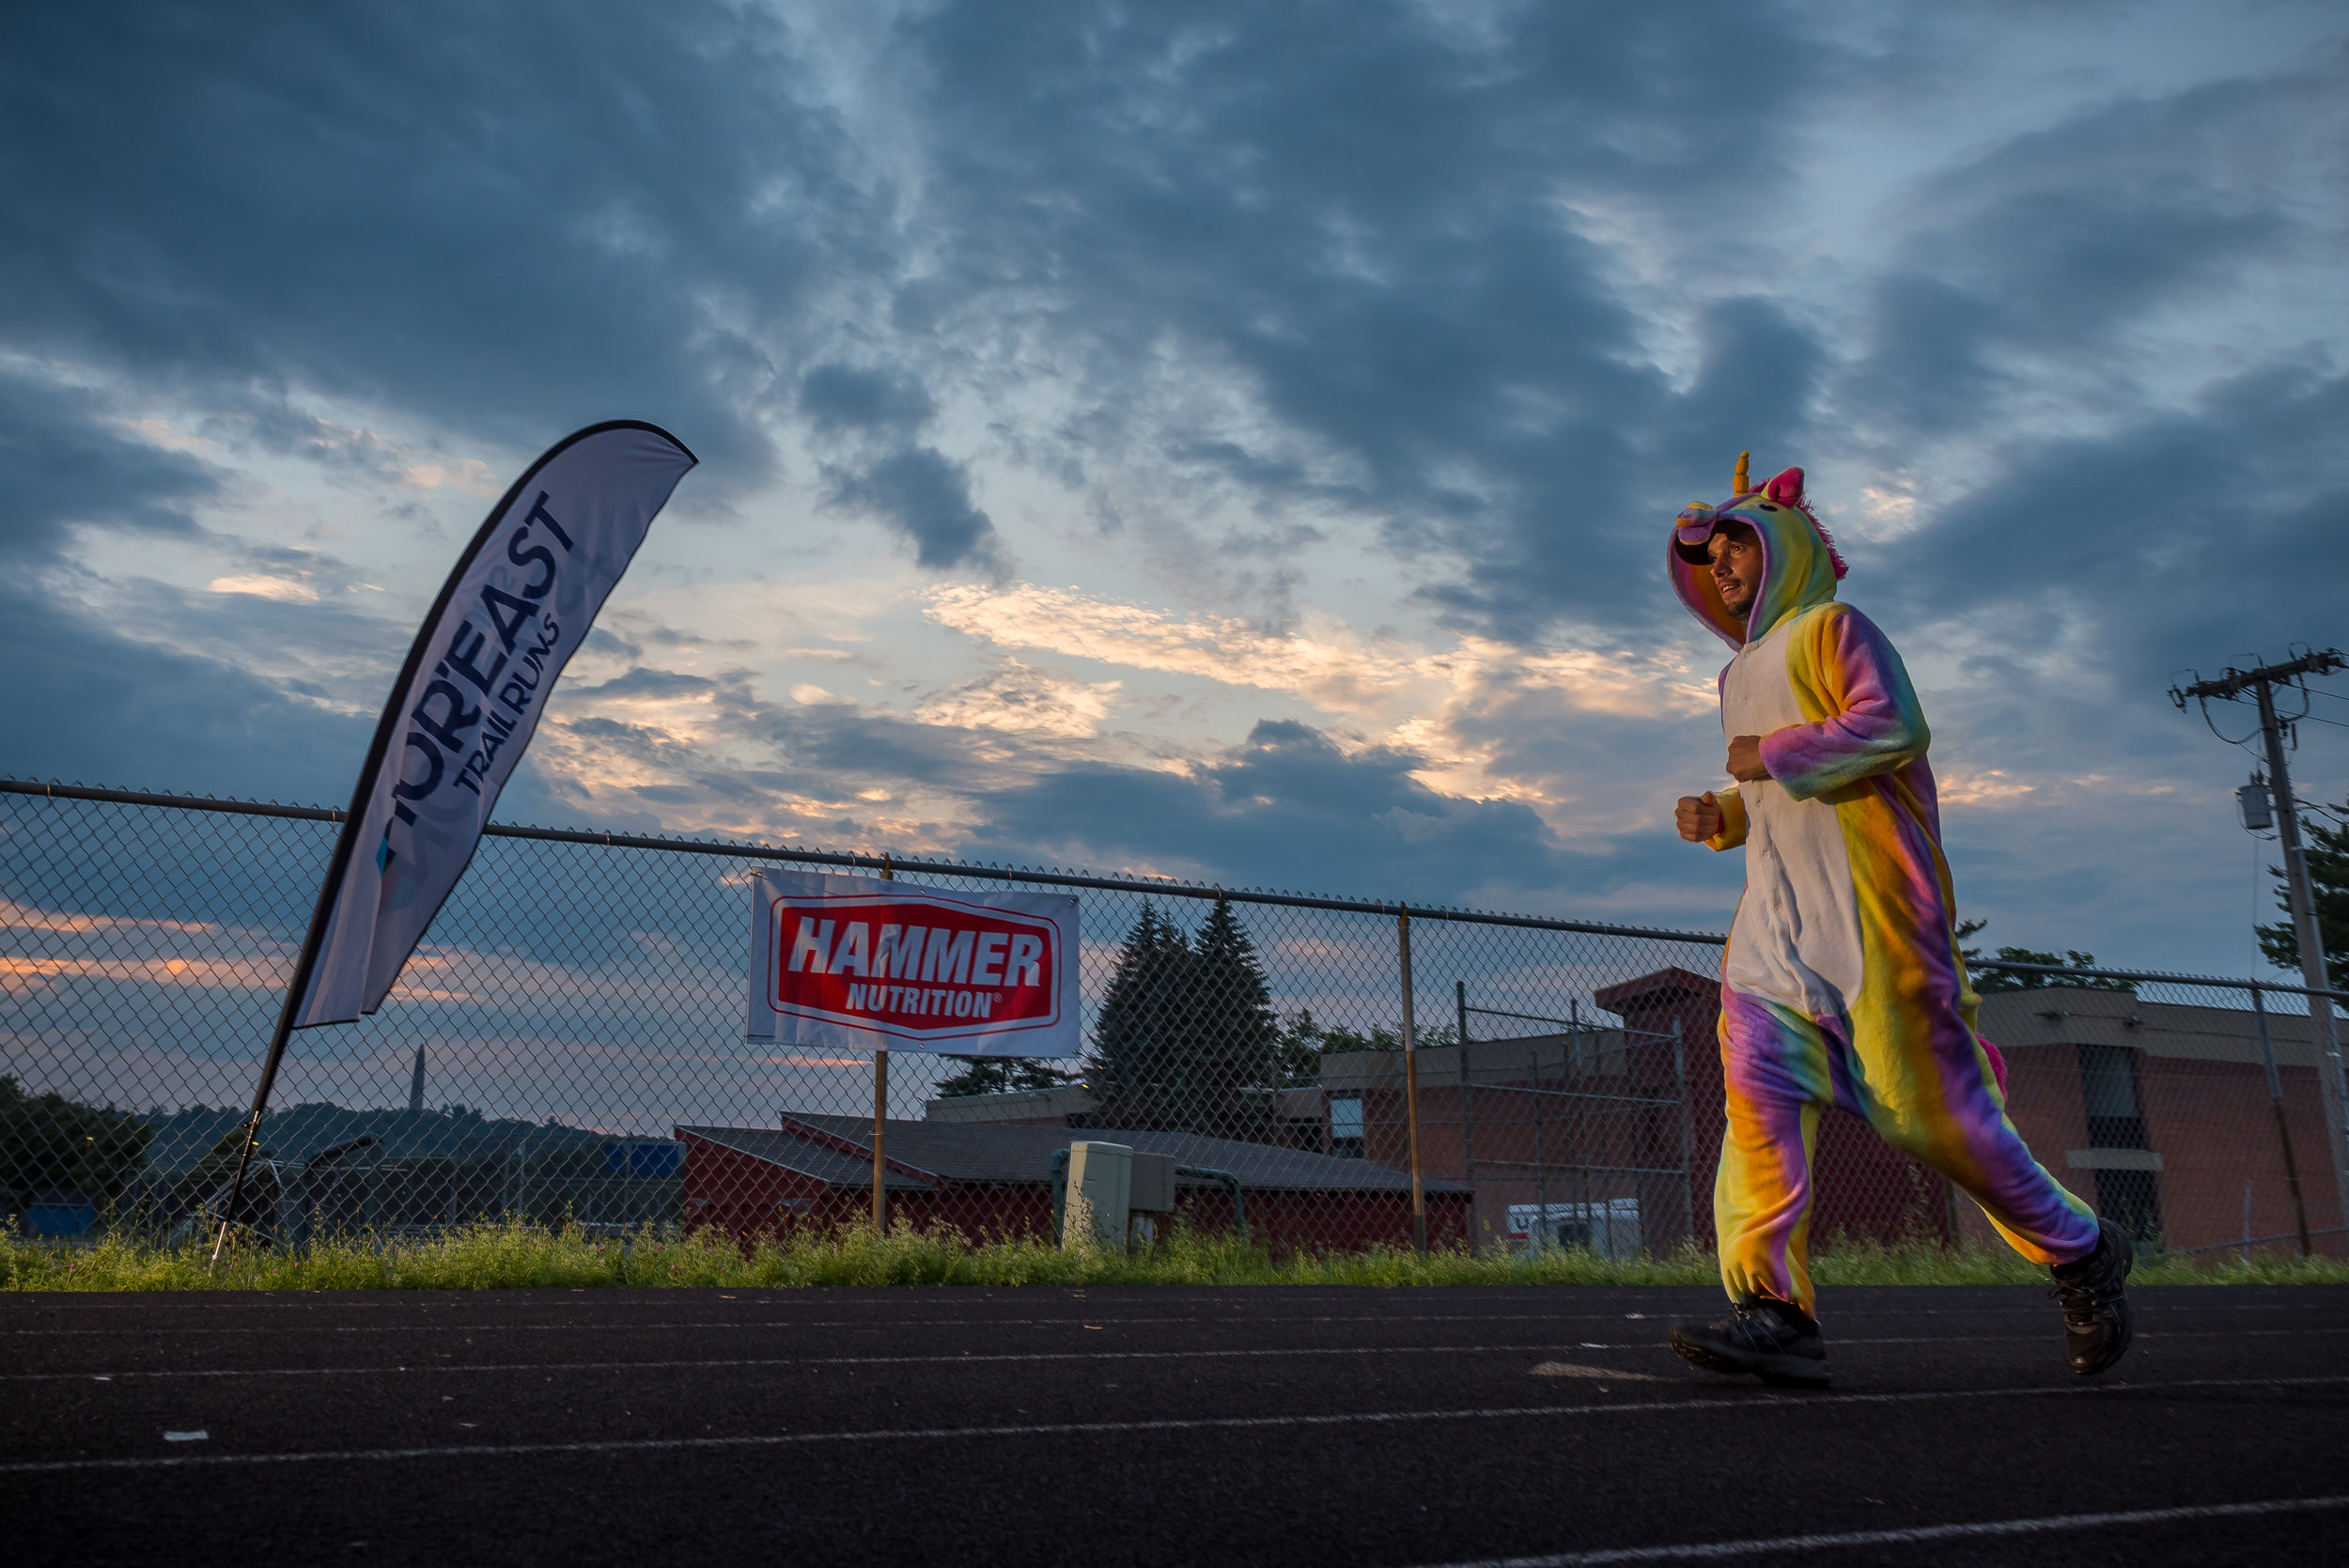 2018 Ethan Allen 24, which was held at Mount Anthony Union's track (Photo credit: Joe Viger Photography, www.joeviger.com )